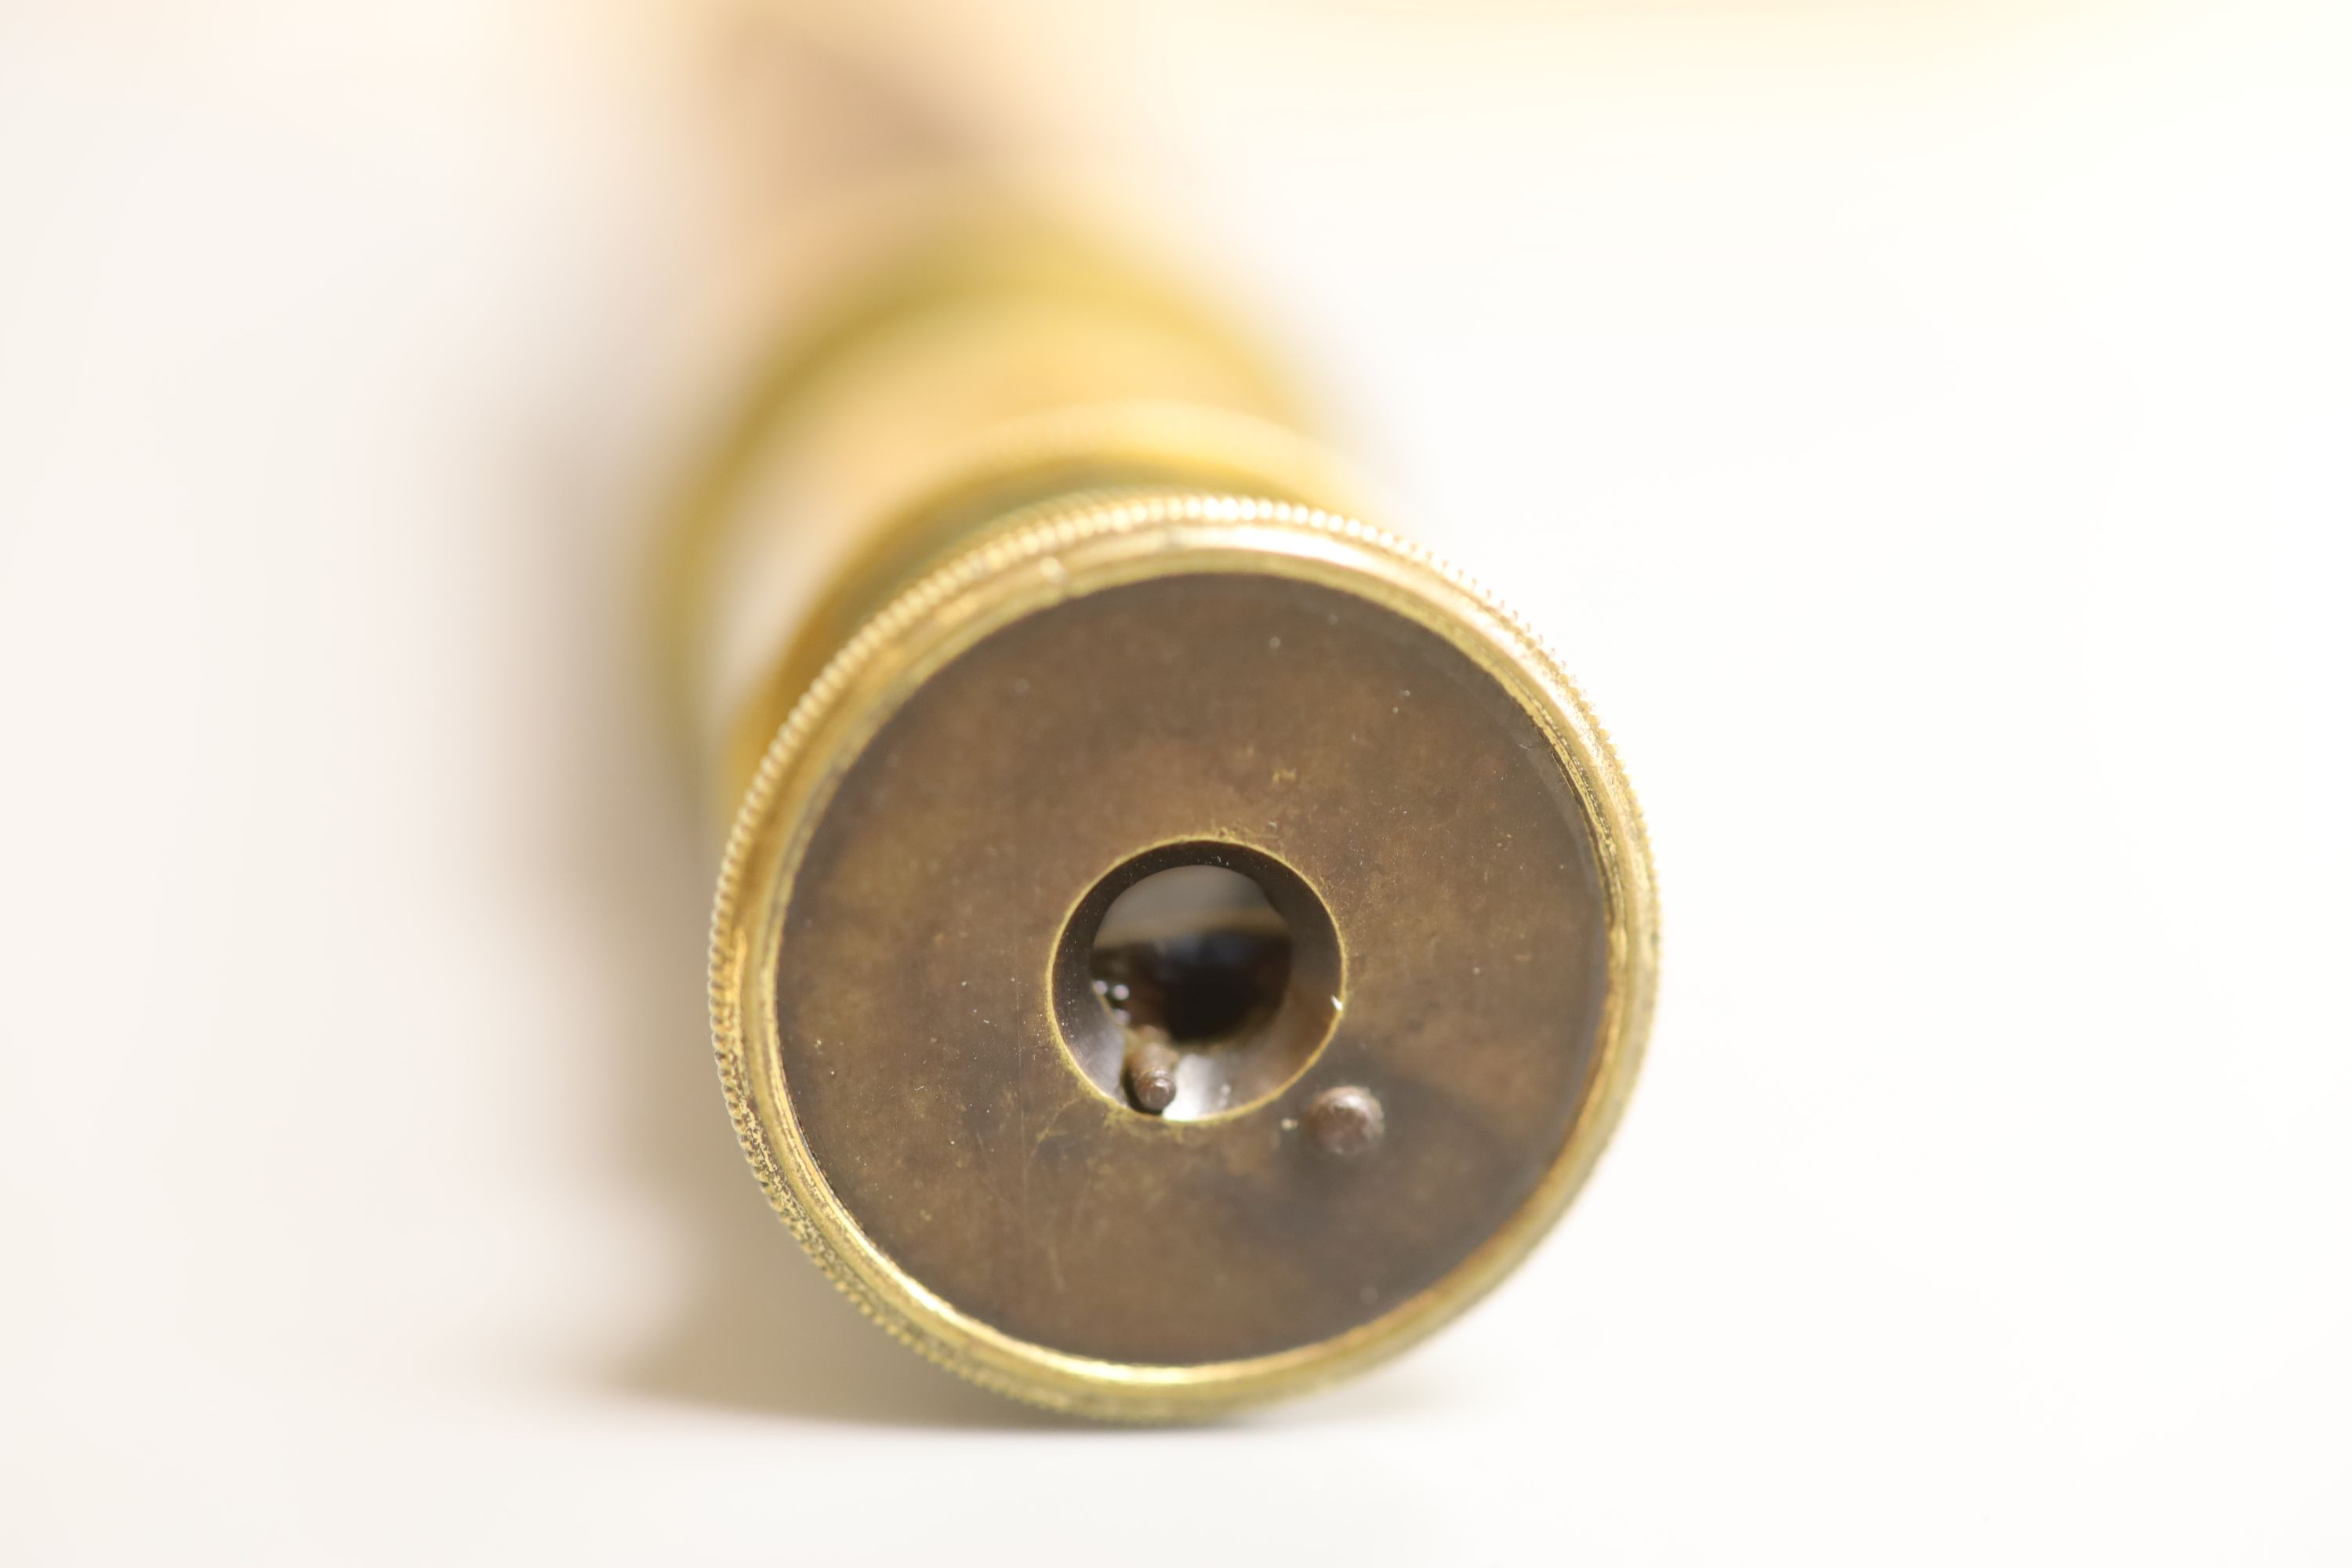 An early 20th century brass and mahogany three drawer telescope, overall length 40.5cm extended - Image 3 of 4